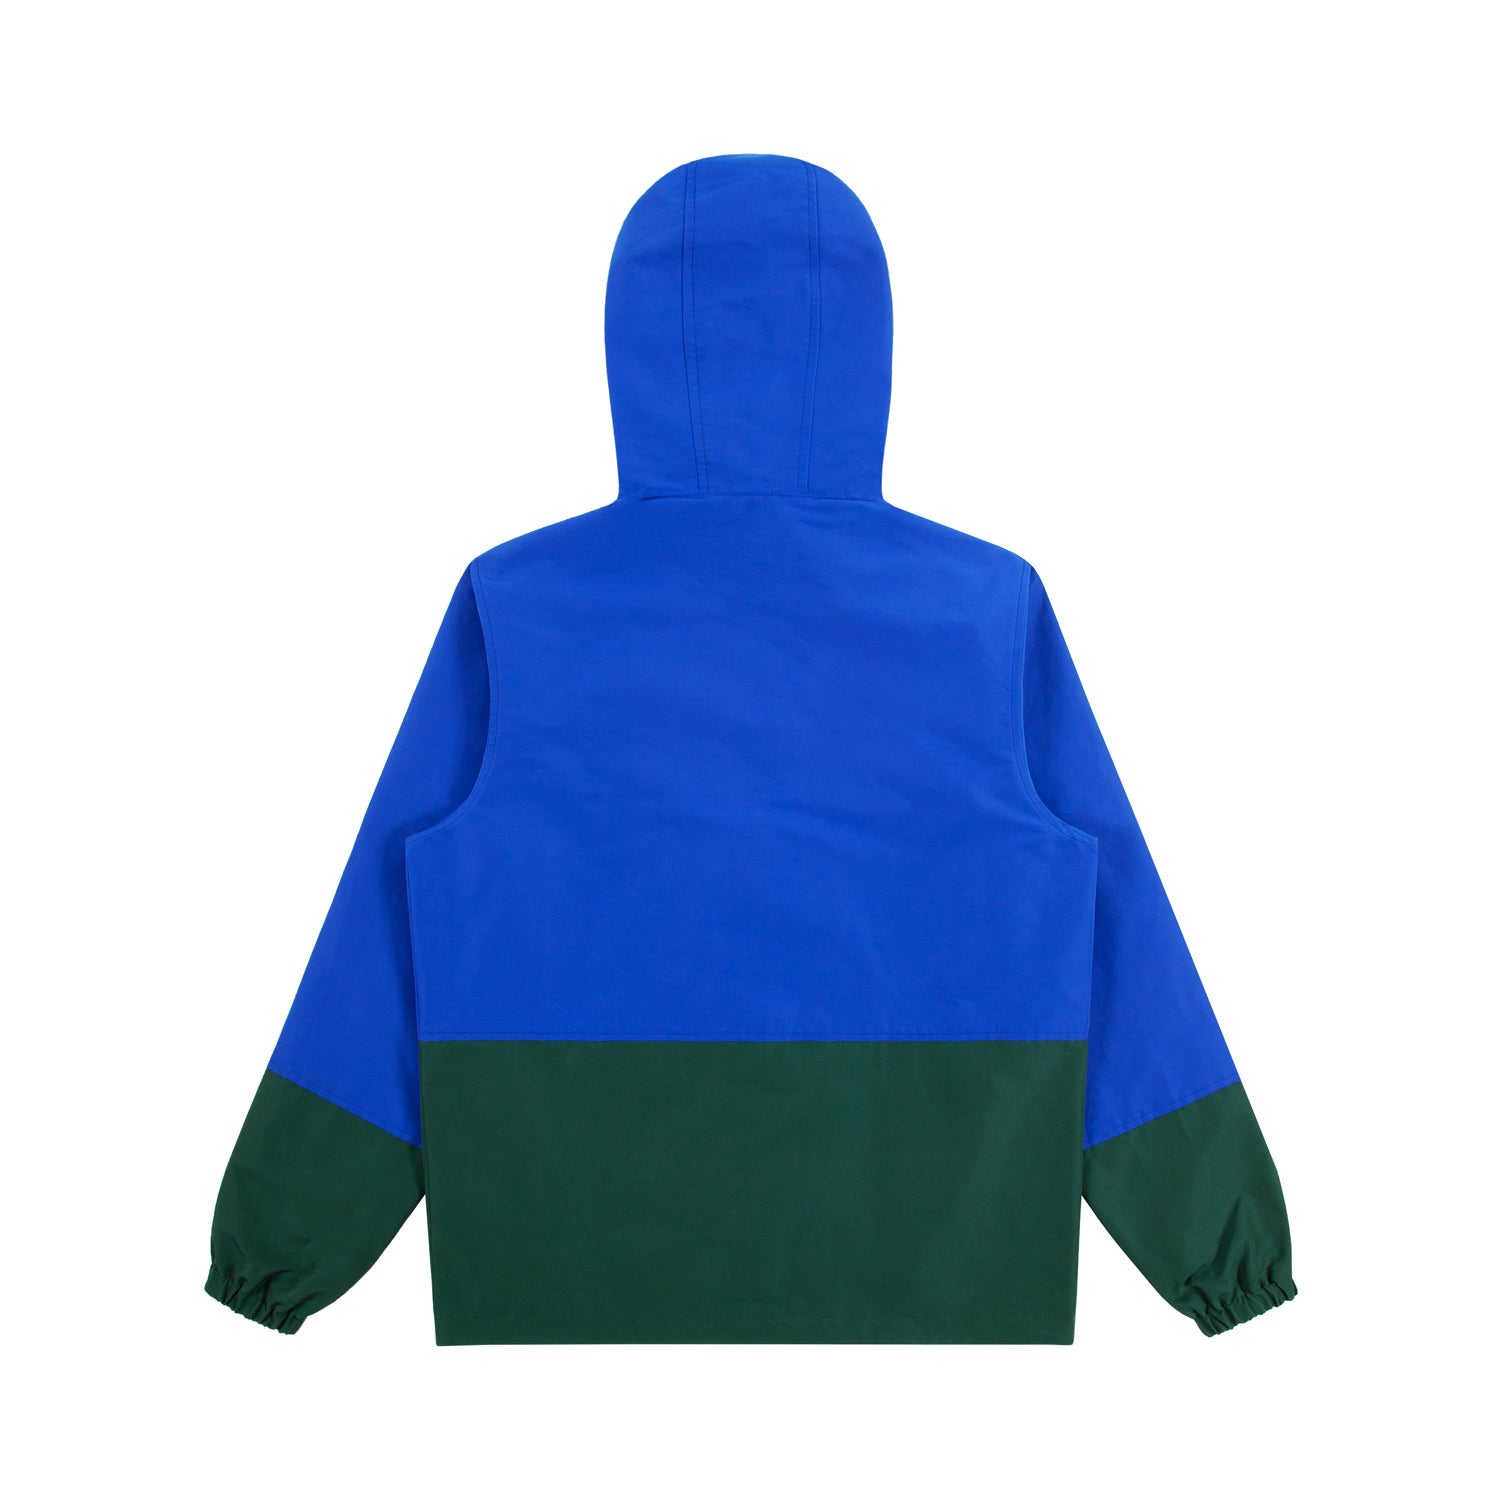 Two-Tone Windcheater